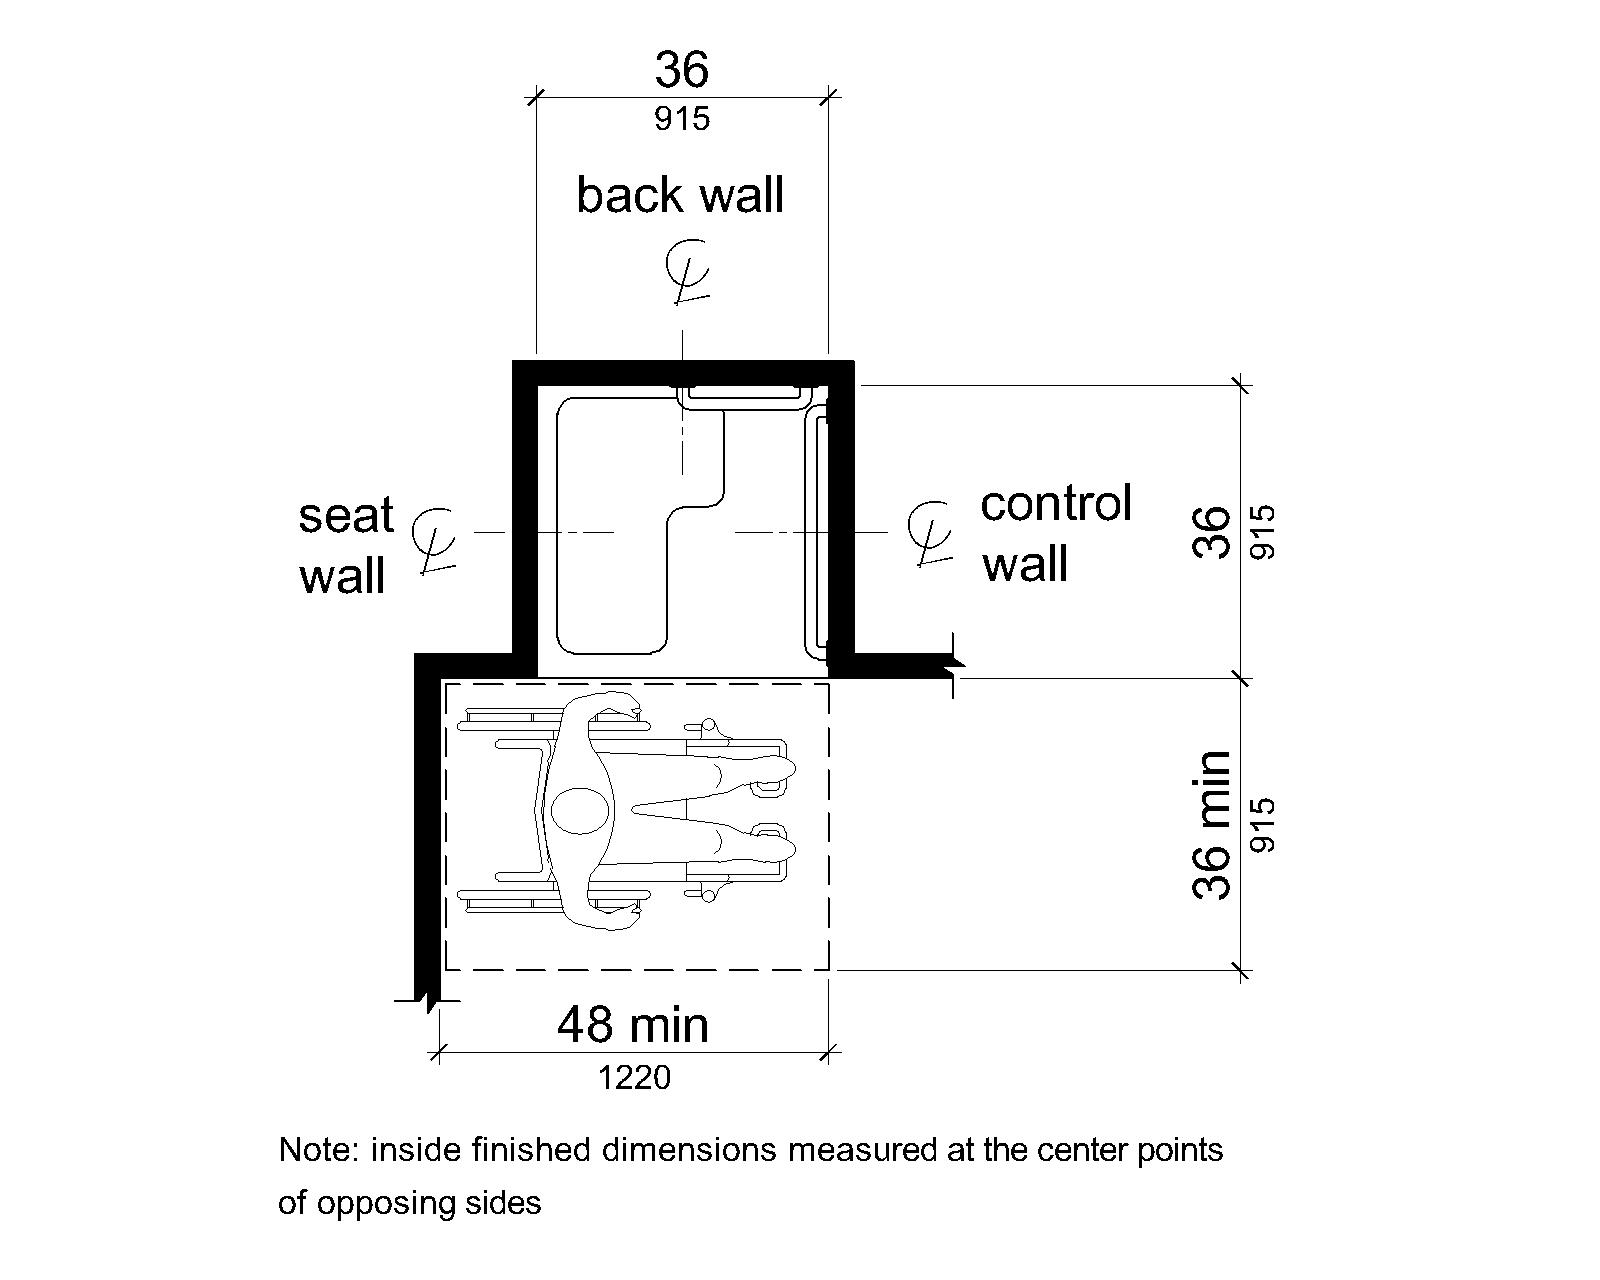 A transfer stall is shown in plan view to be 36 by 36 inches (915 by 915 mm). Clear deck space in front is 36 inches (915 mm) wide minimum and 48 inches (1220 mm) long minimum measured from the control wall.